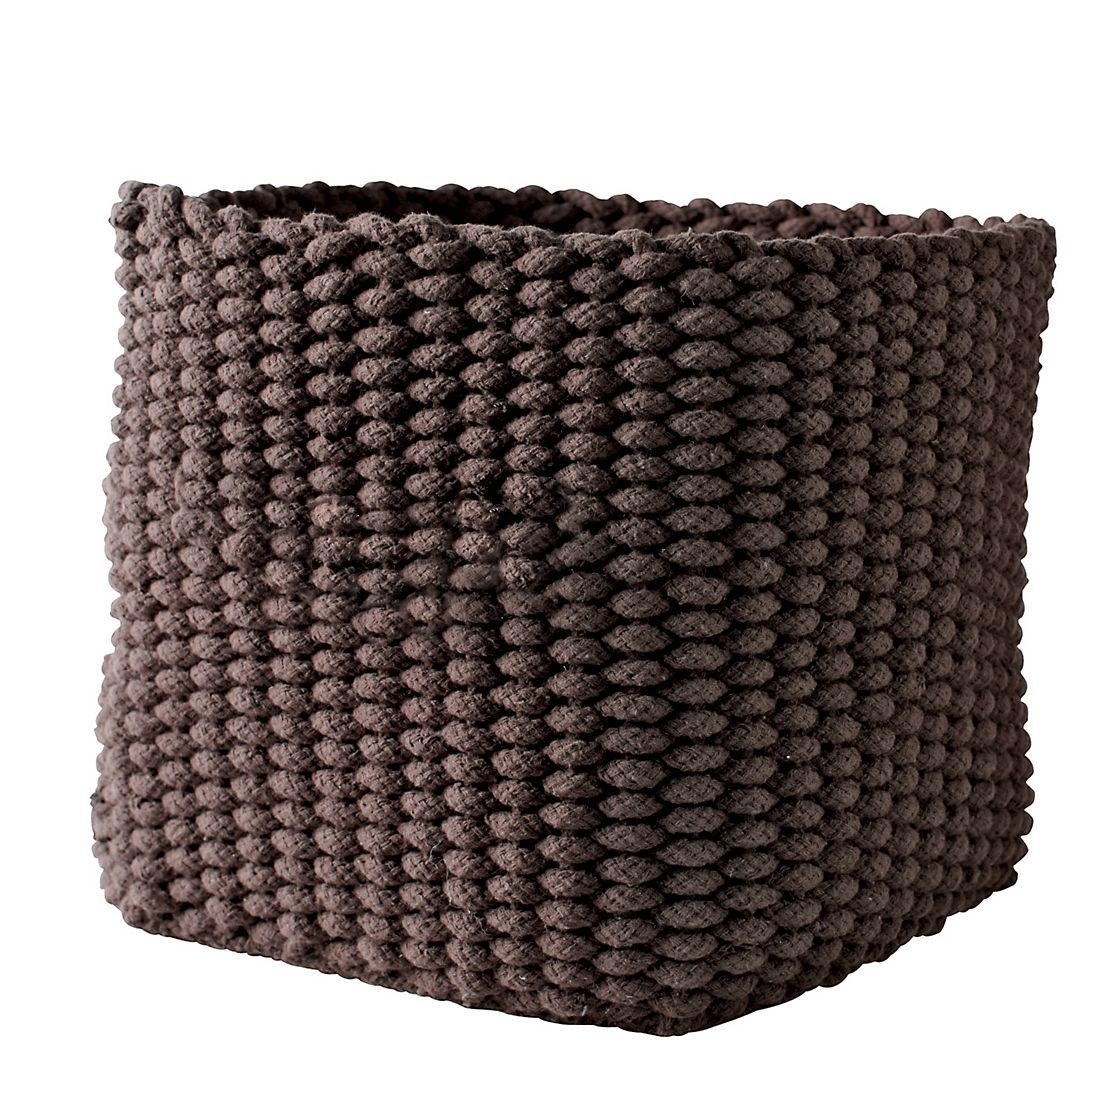 Knitted Storage Basket | The Company Store. Hand Knit Cotton Rope Basket